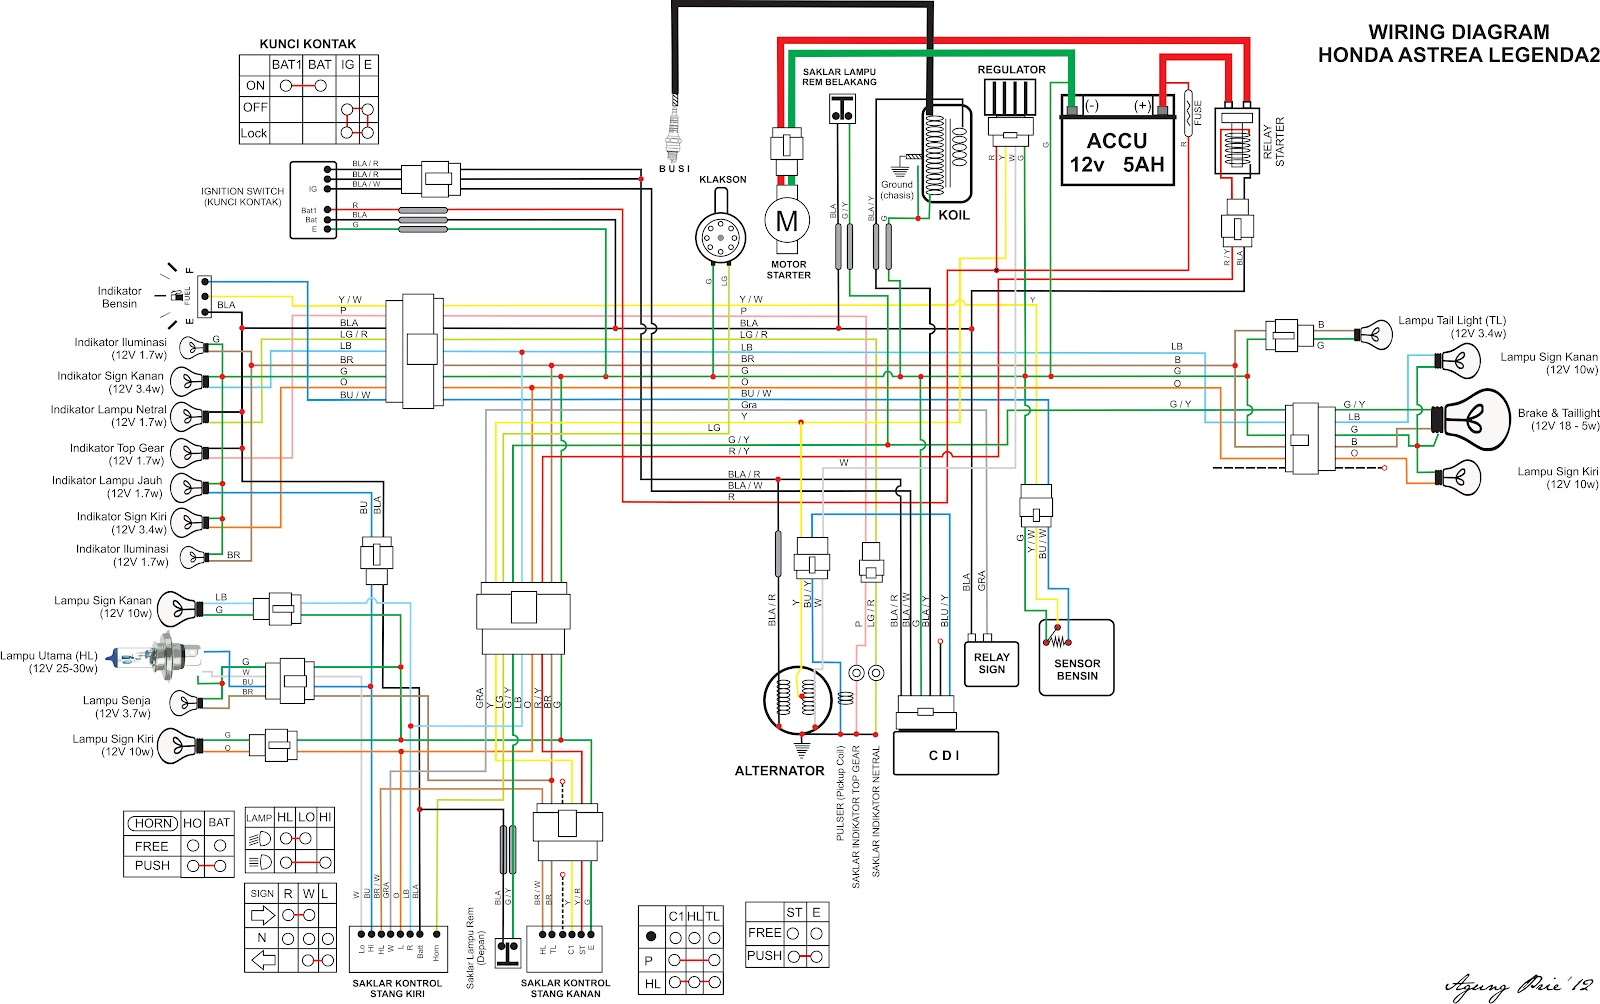 2001 Kenworth W900 Wiring Diagrams Telecaster 5 Way Super Switch Diagram T800 T2000 ~ Odicis